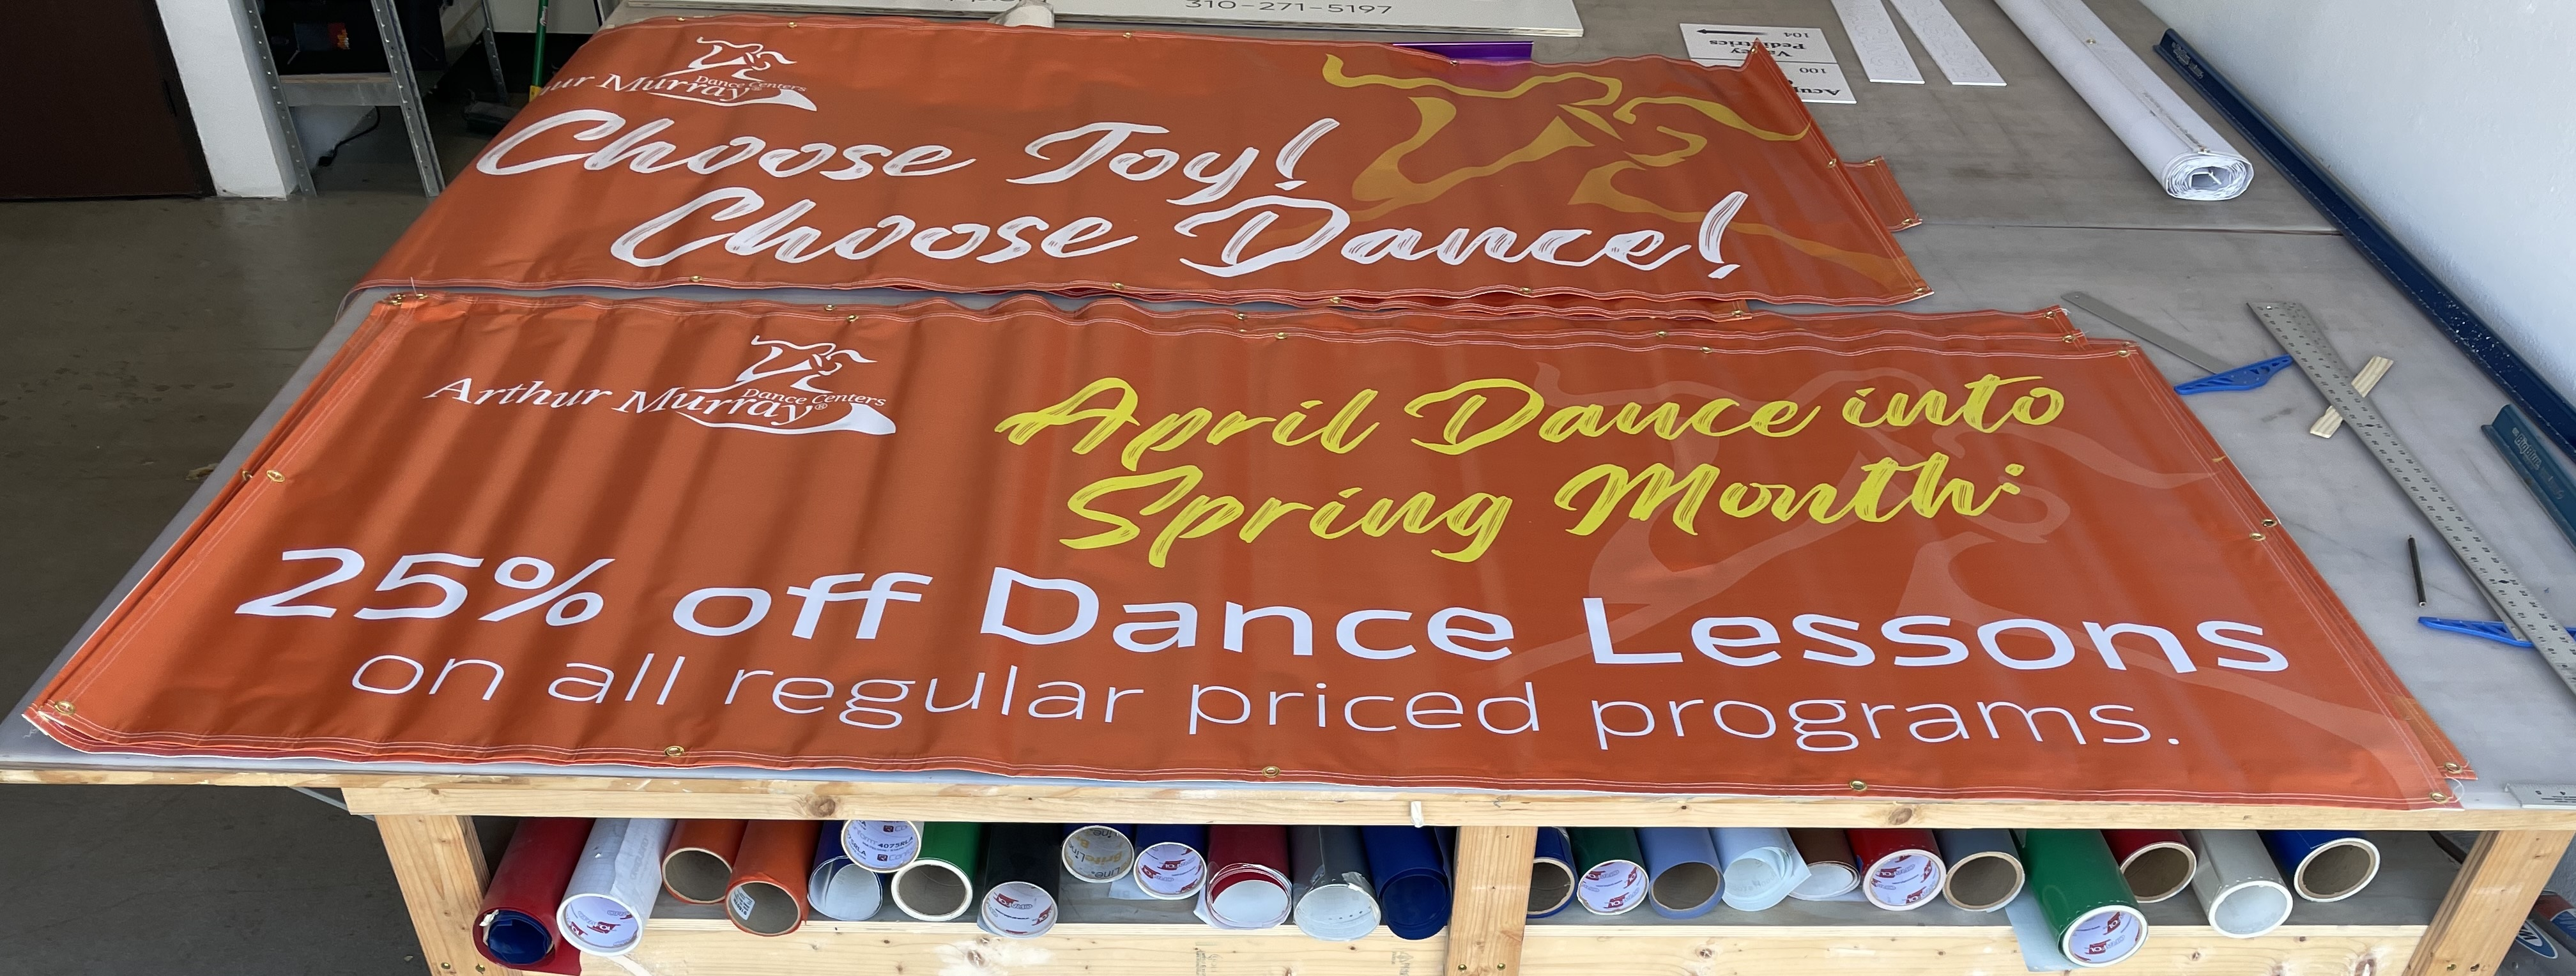 As Arthur Murray prepares to re-open, they created a multi-banner campaign. With this they will attract customers to their Woodland Hills and Thousand Oaks locations.